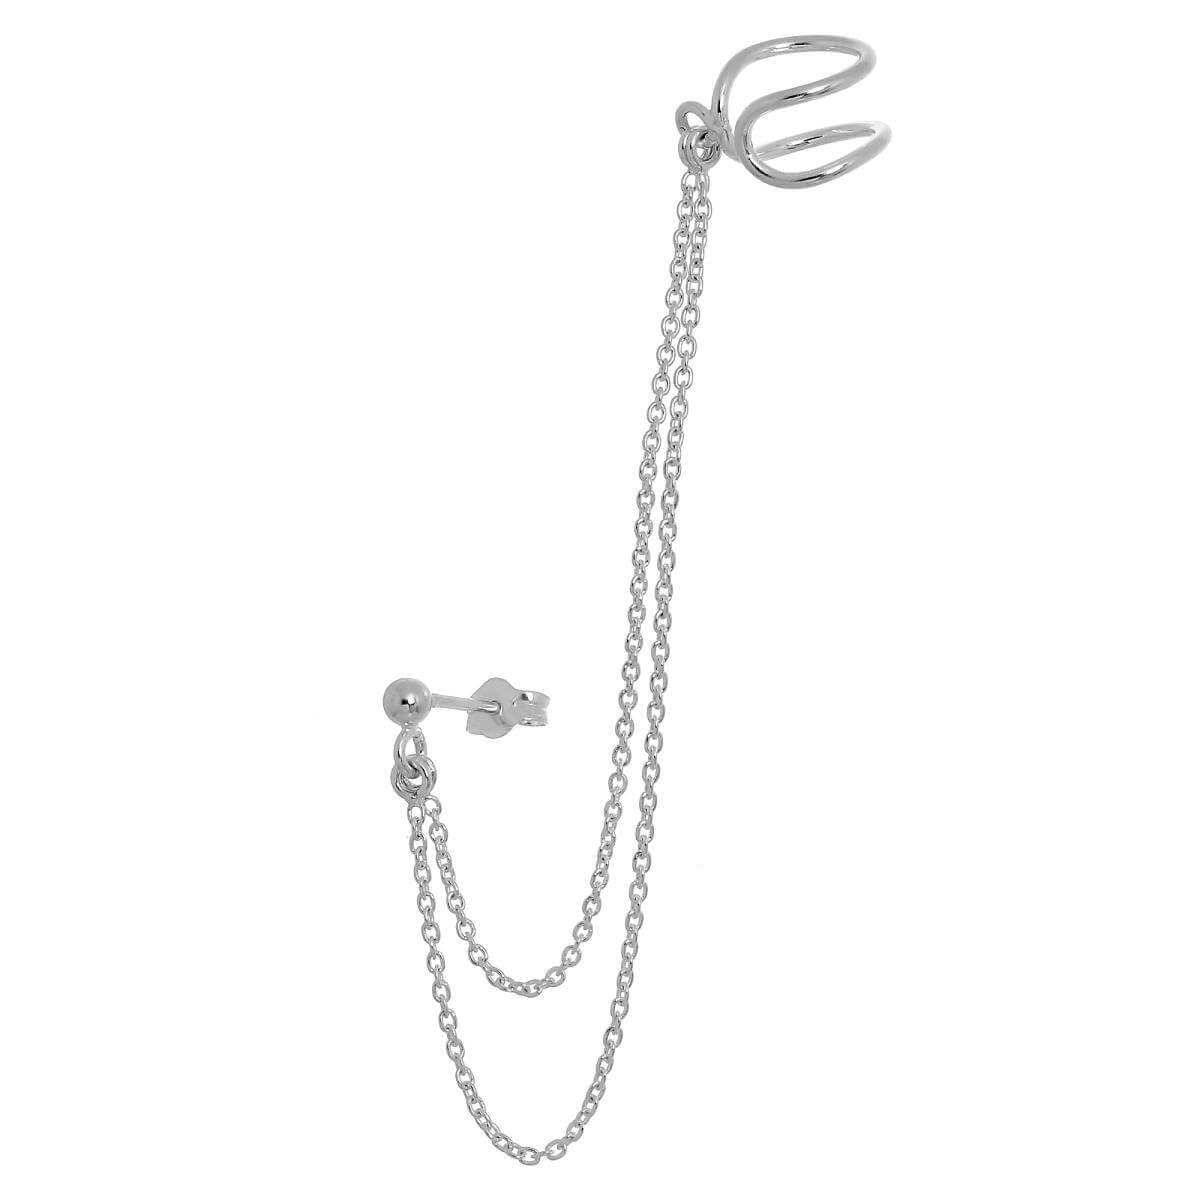 Sterling Silver Ball Stud Amp Ear Cuff With Chain Earrings